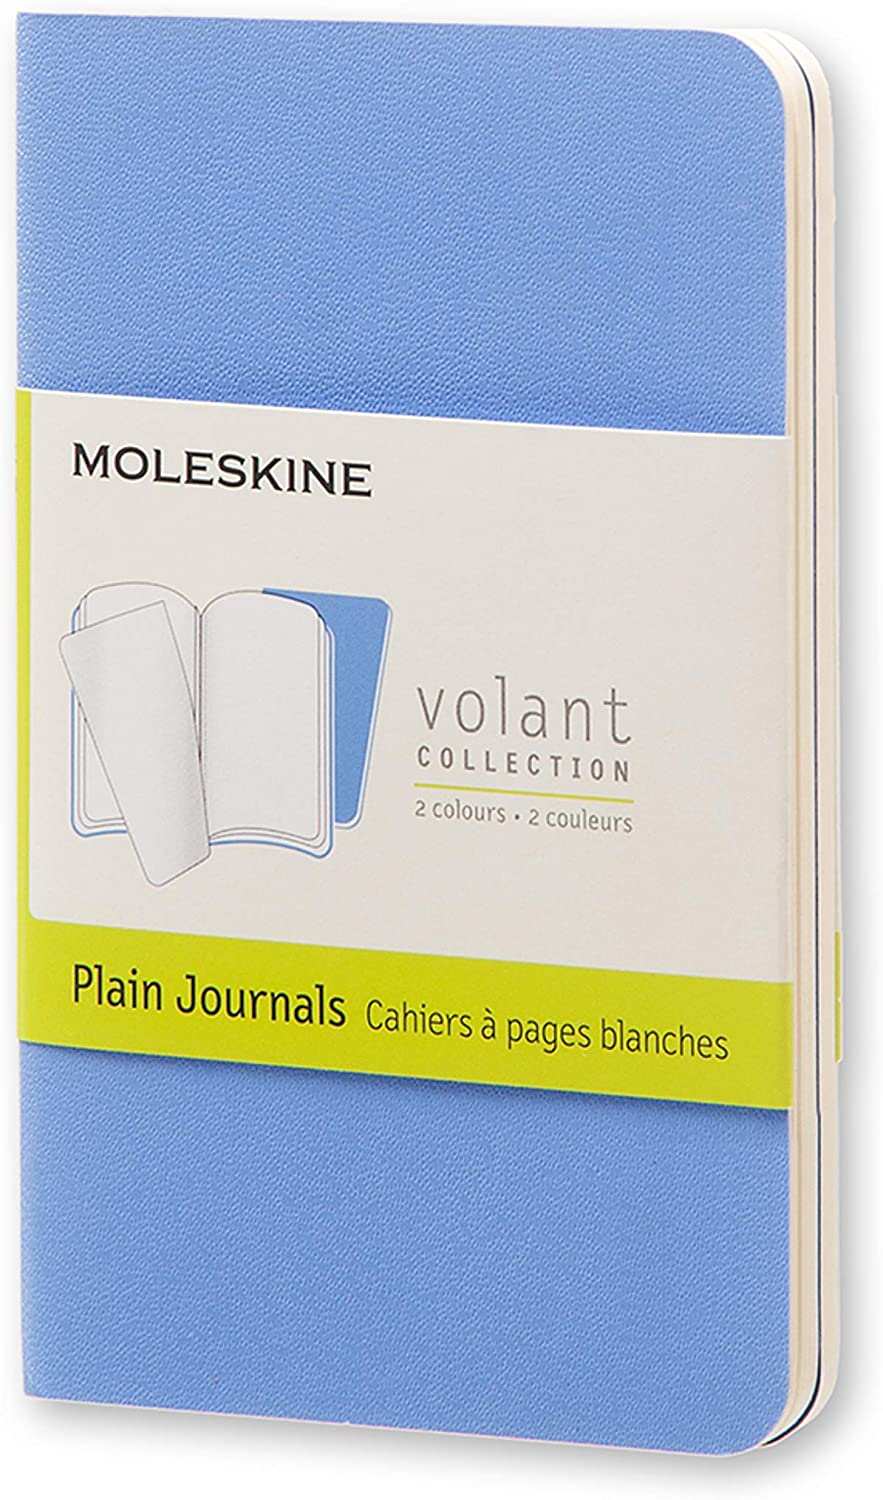 Moleskine Quaderno Cahier Journal Volant Collection, Pagina Bianca, Celeste